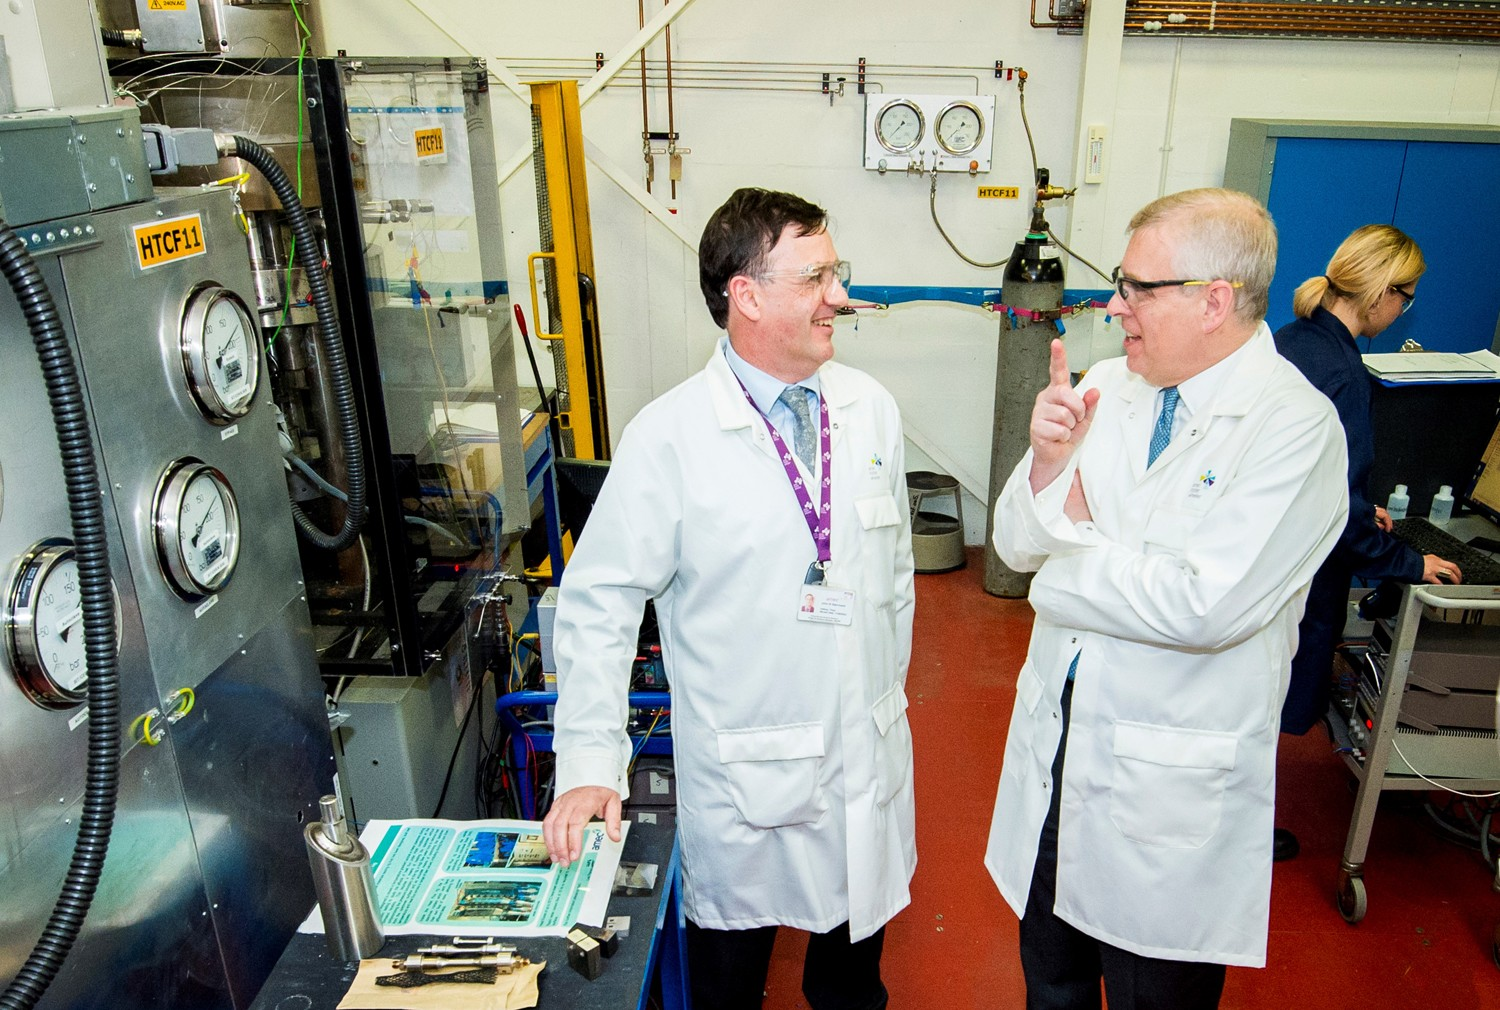 HRH Duke of York visits Amec Foster Wheeler's UK labs